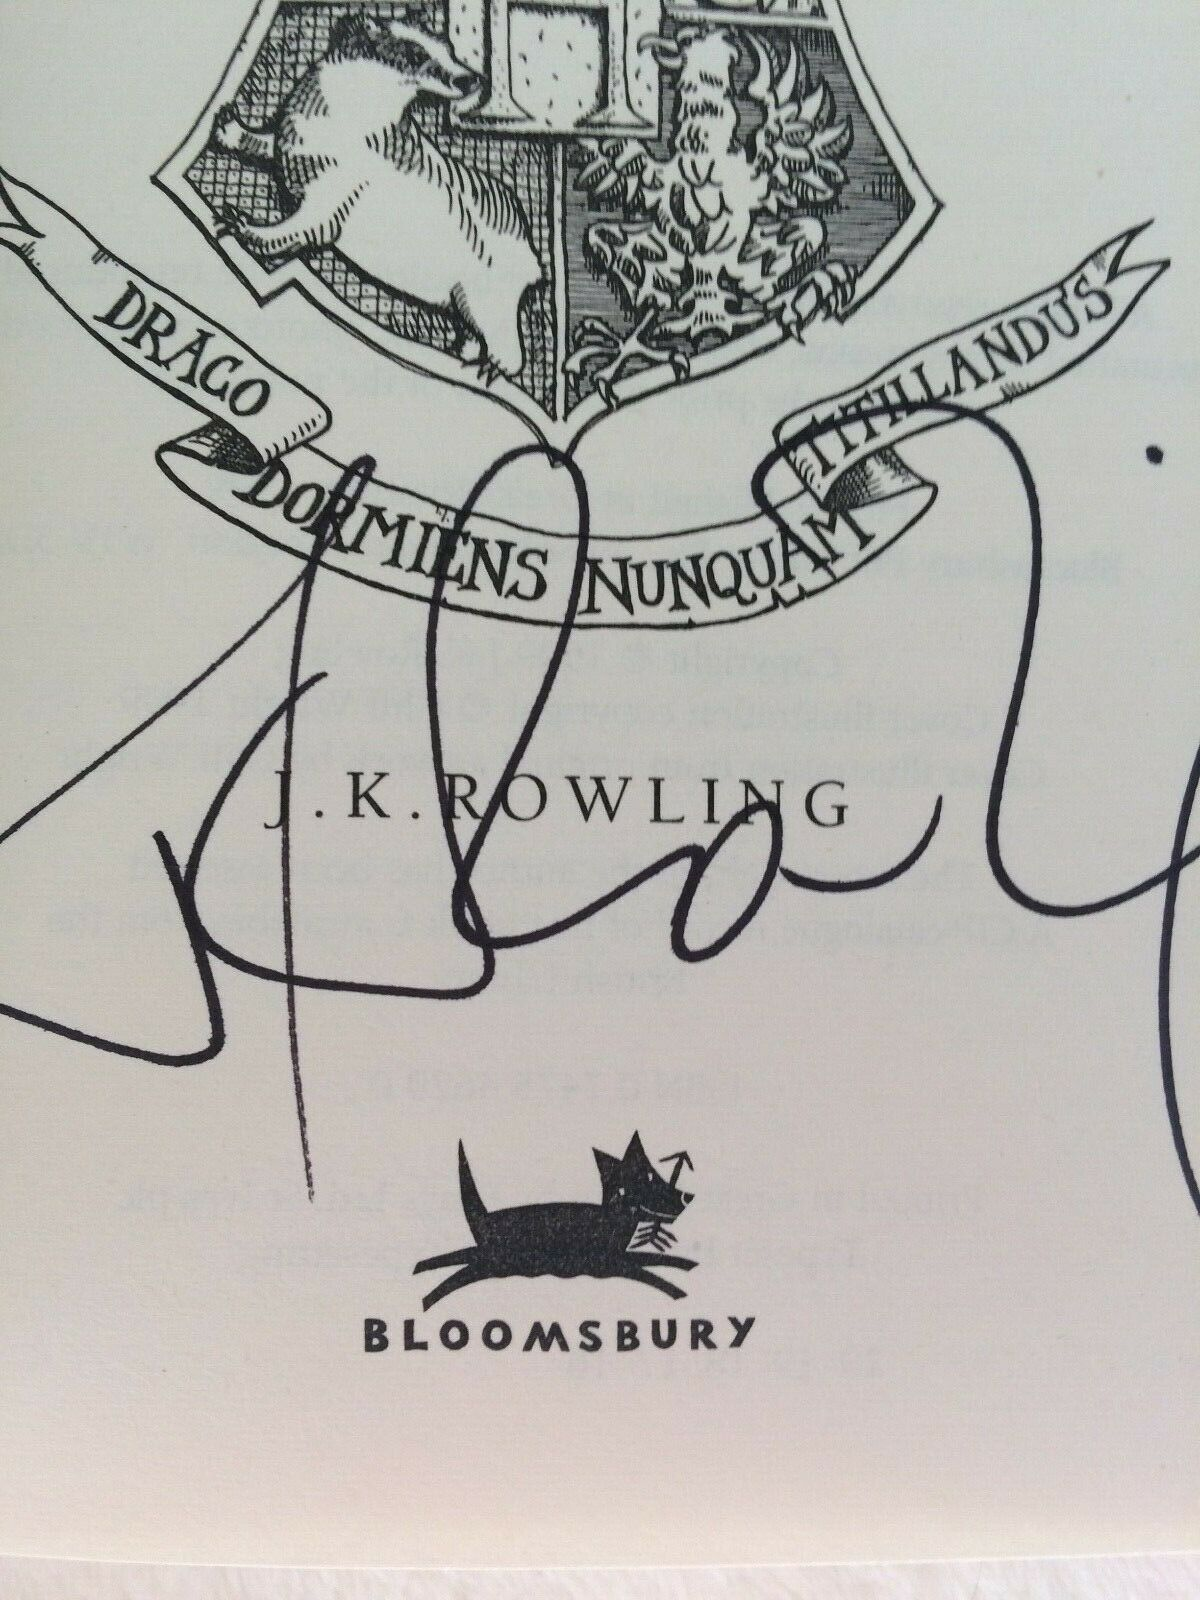 J.K. Rowling signature forgery found inside a UK Harry Potter and the Prisoner of Azkaban on ebay. Sold by DollPainte-0.